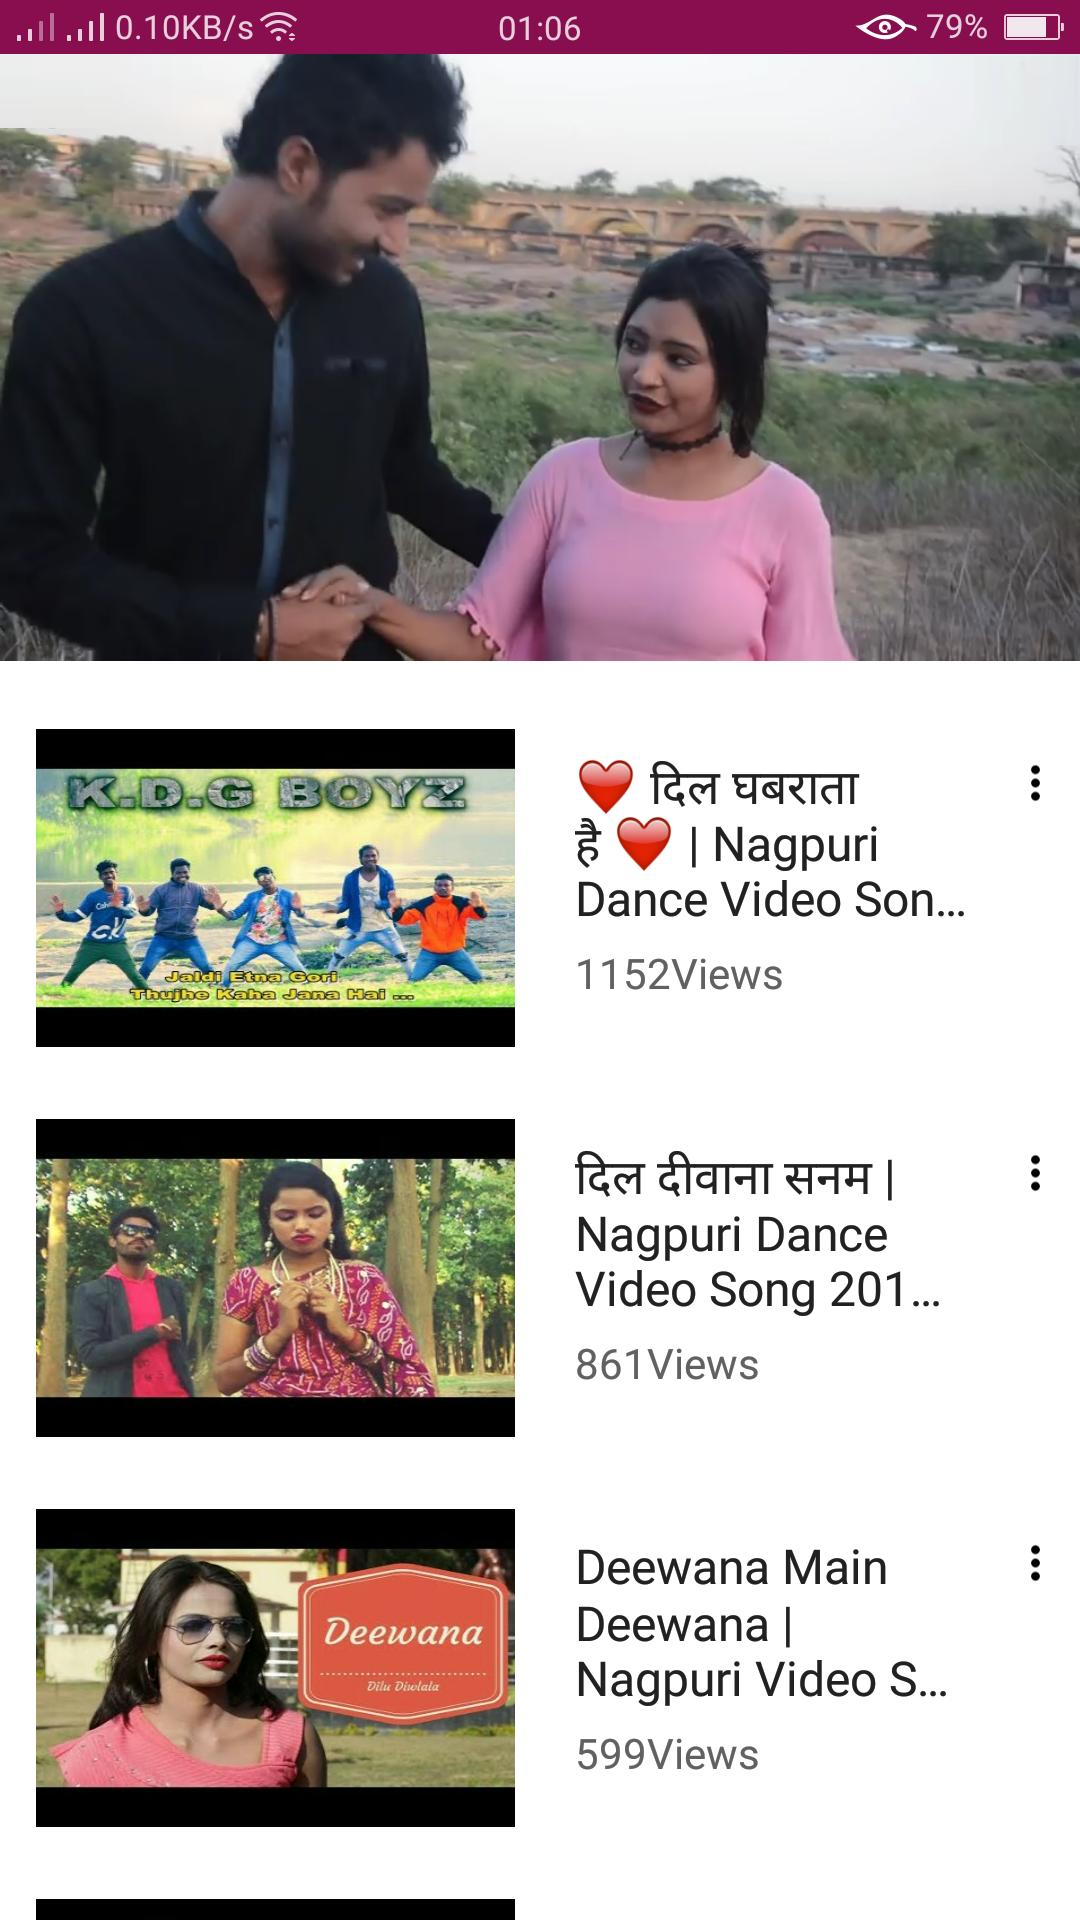 Nagpuri Song Dj 🕺 for Android - APK Download